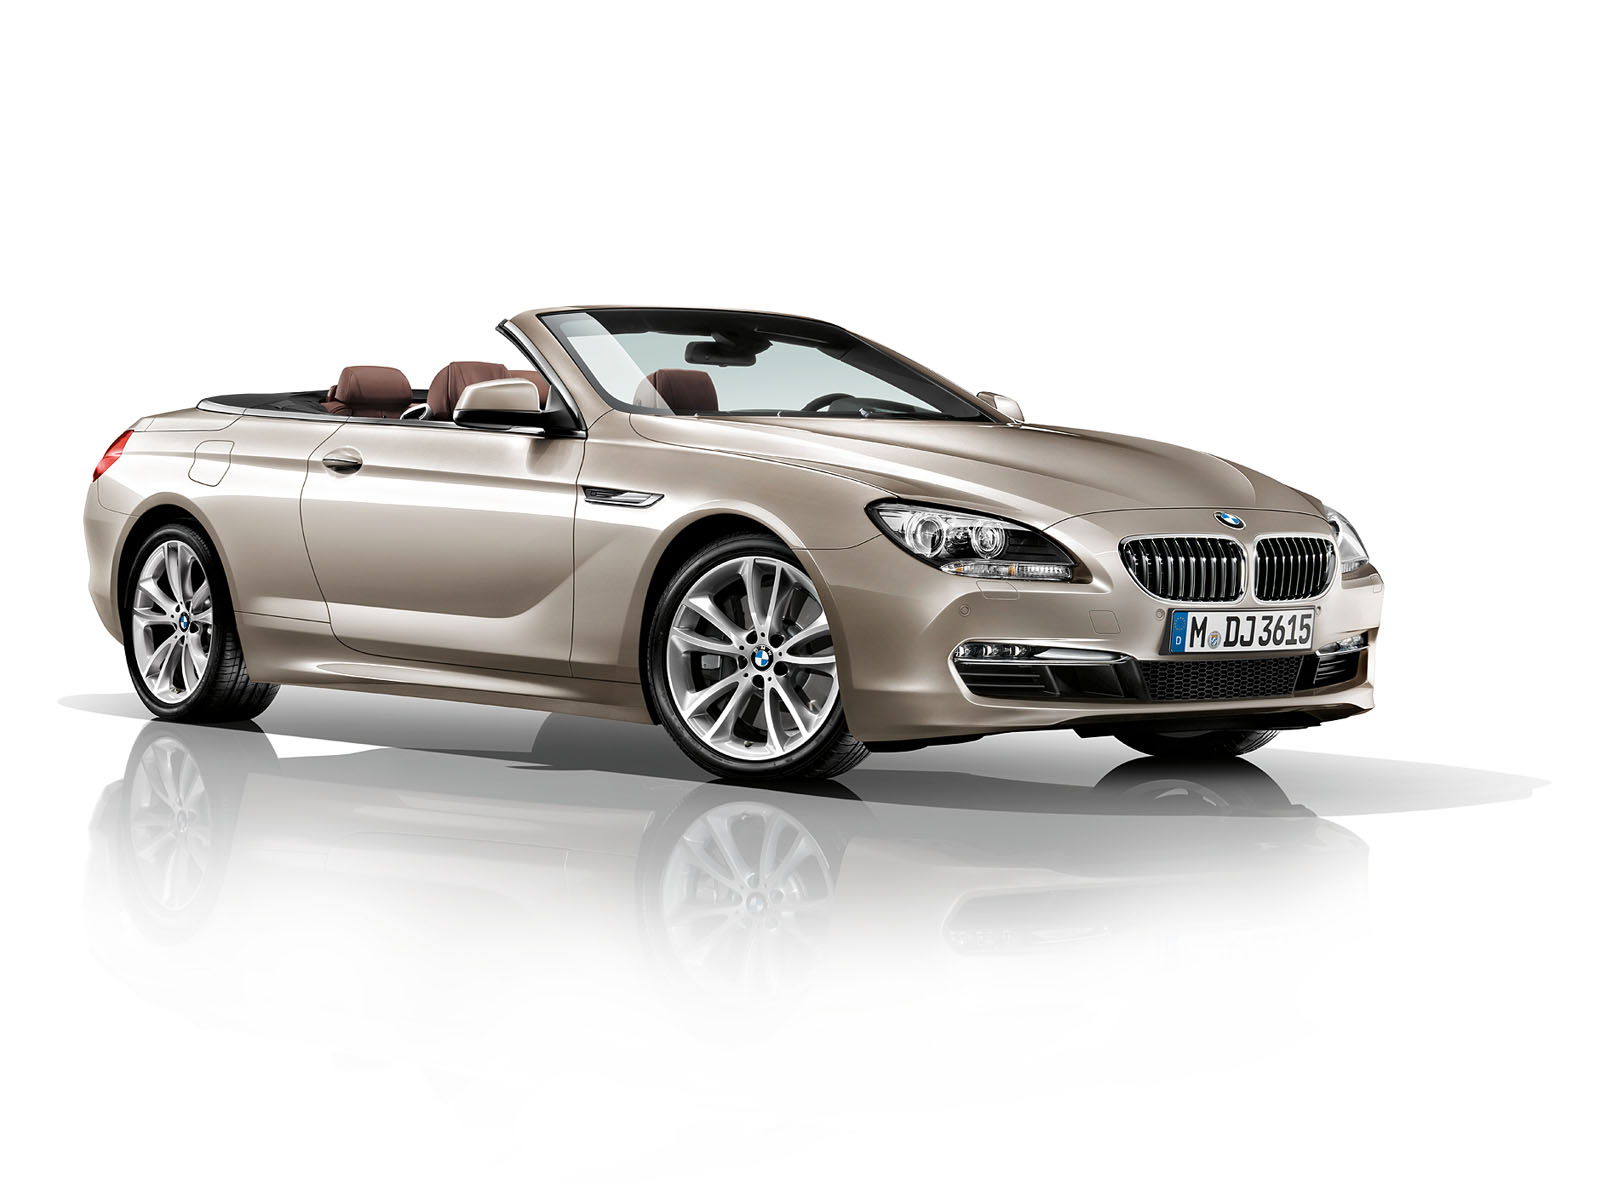 BMW 6 Series Convertible 2012 650i xDrive in Egypt: New Car Prices ...